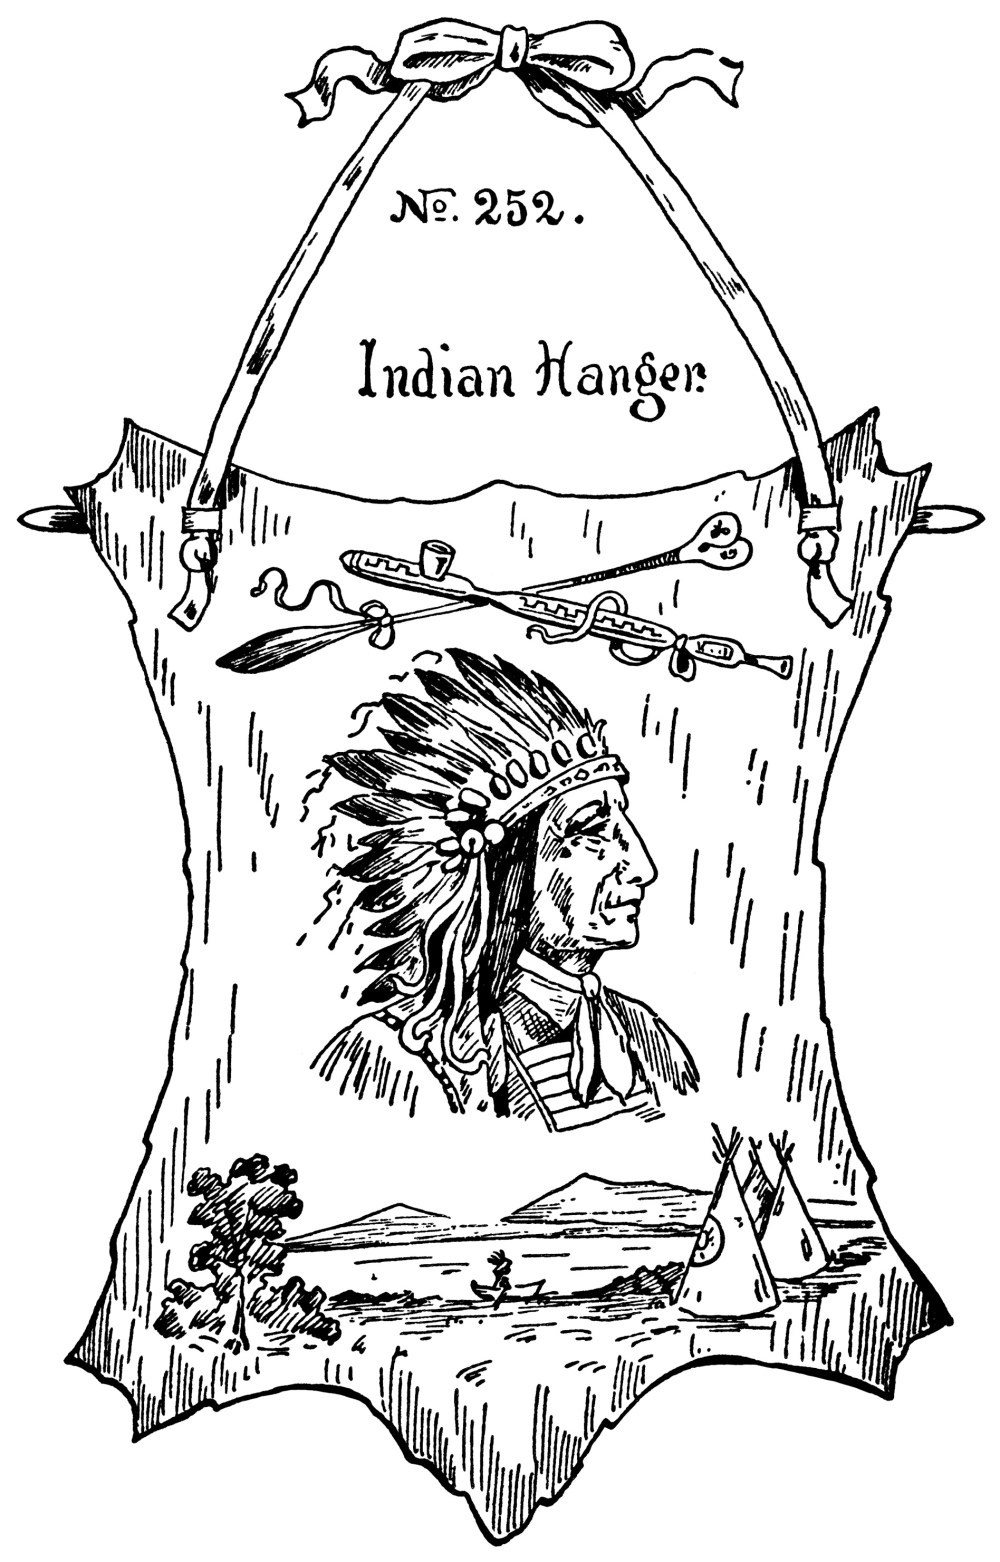 medium resolution of indian chief clip art vintage native american illustration black and white clipart warrior